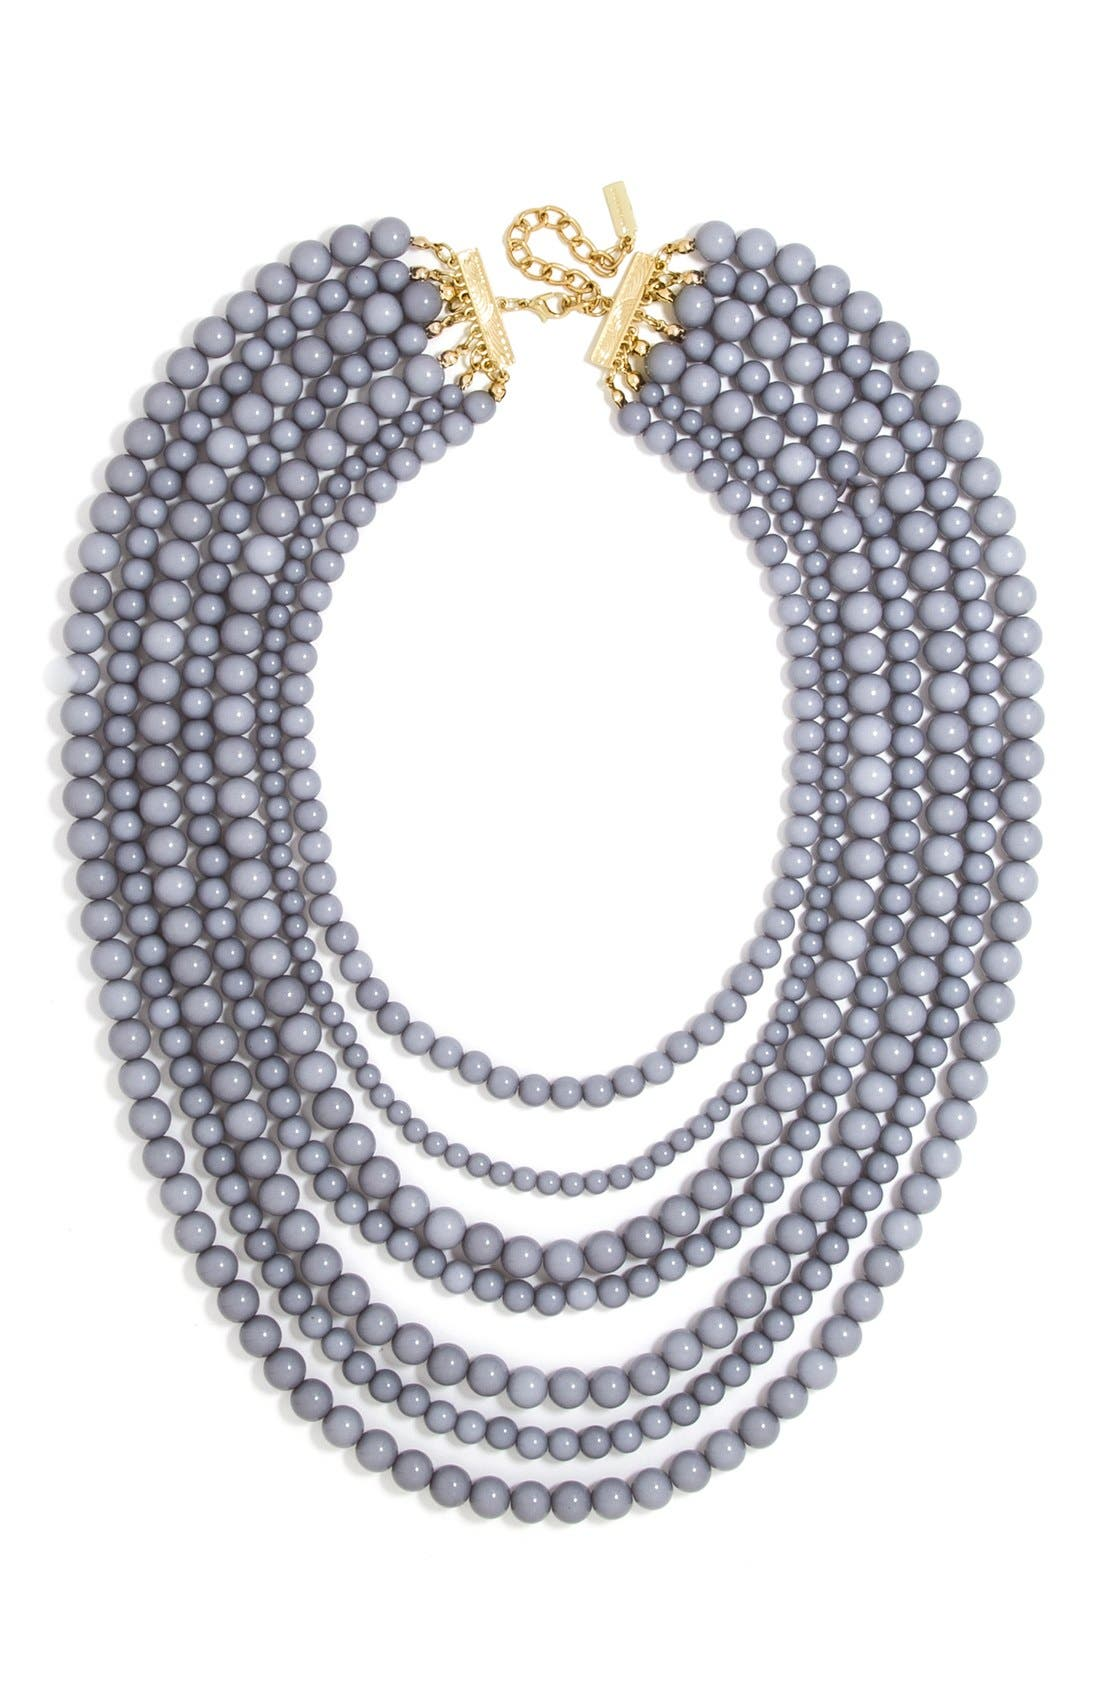 'Bold' Multistrand Beaded Statement Necklace,                             Main thumbnail 2, color,